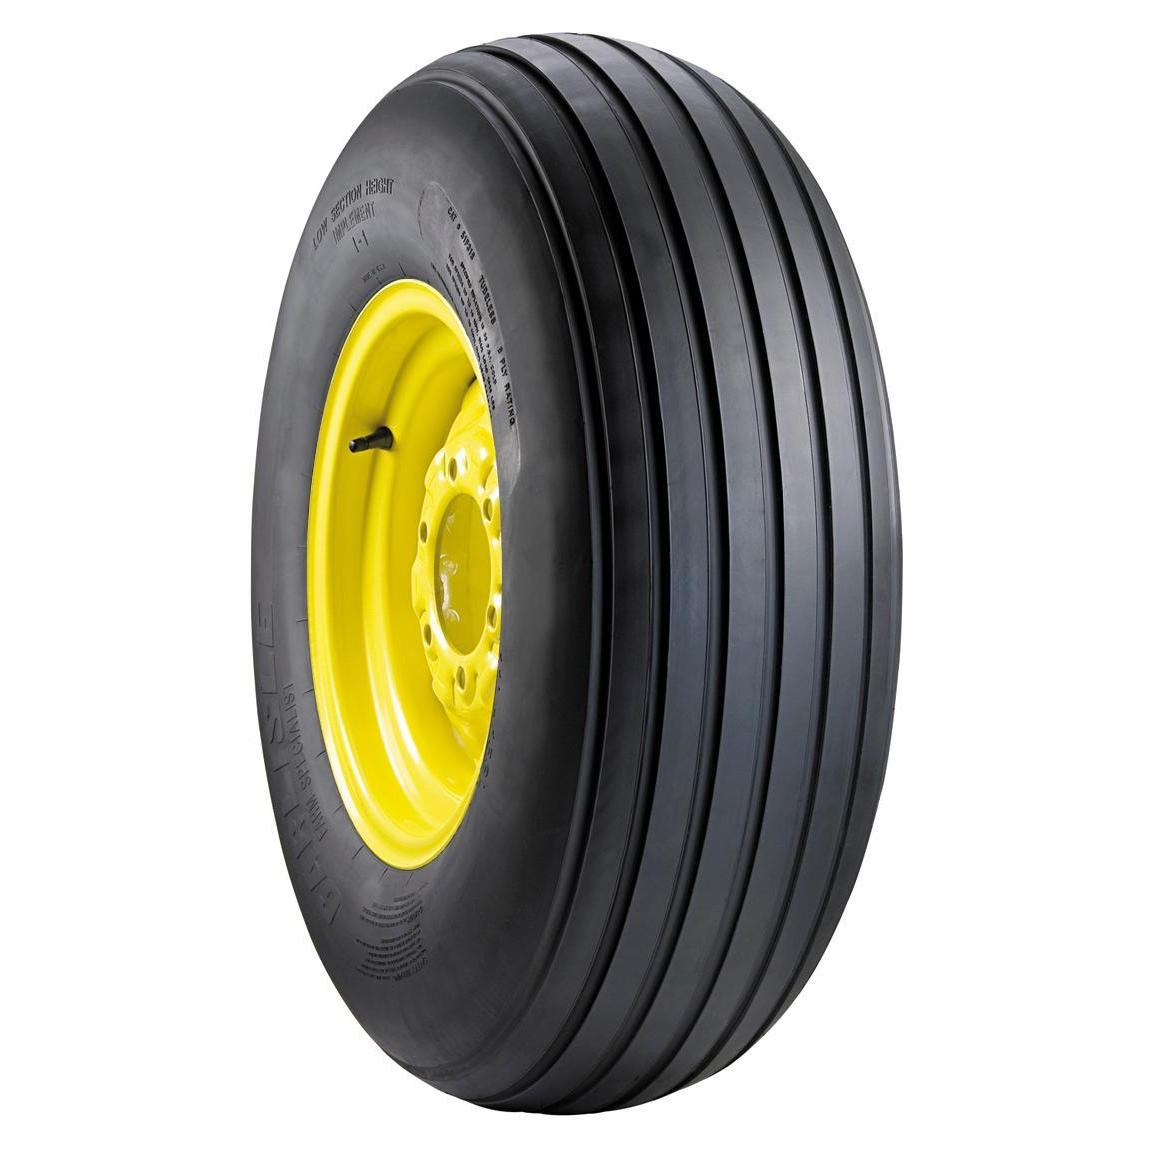 Carlisle Farm Specialist I-1 Agricultural Tire - 9.5L-15 ...